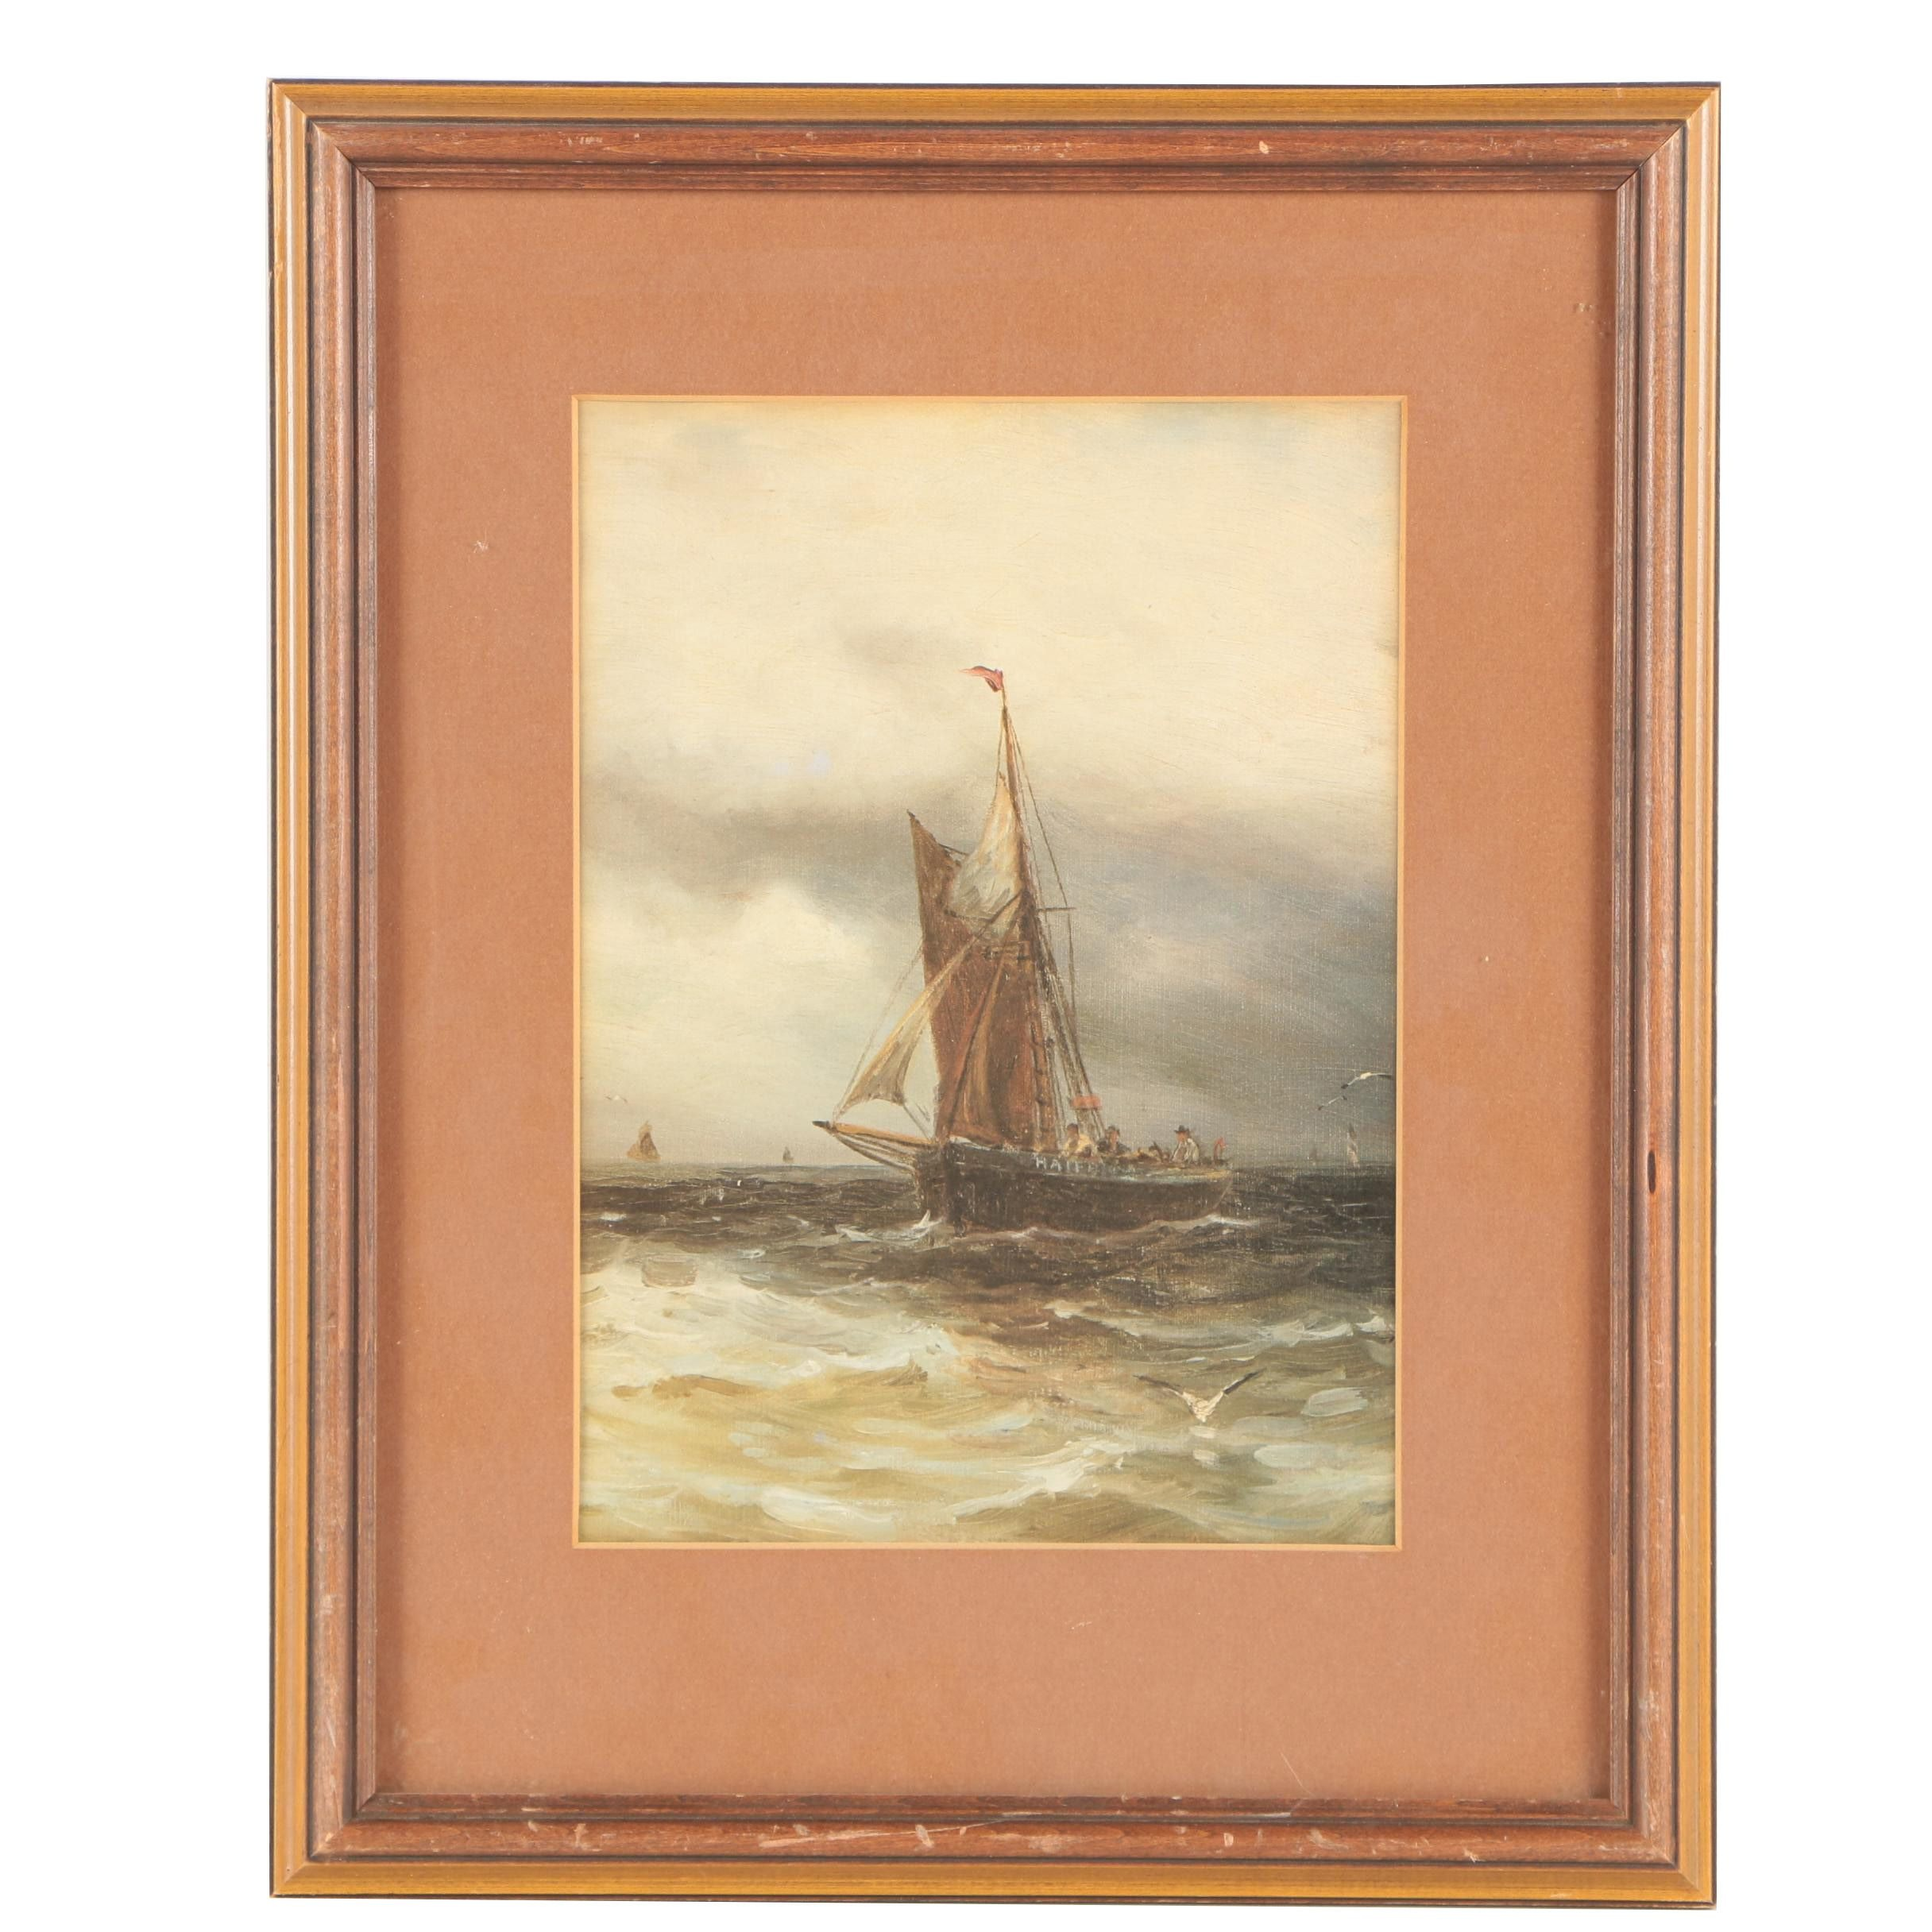 Offset Lithograph of a Sailboat